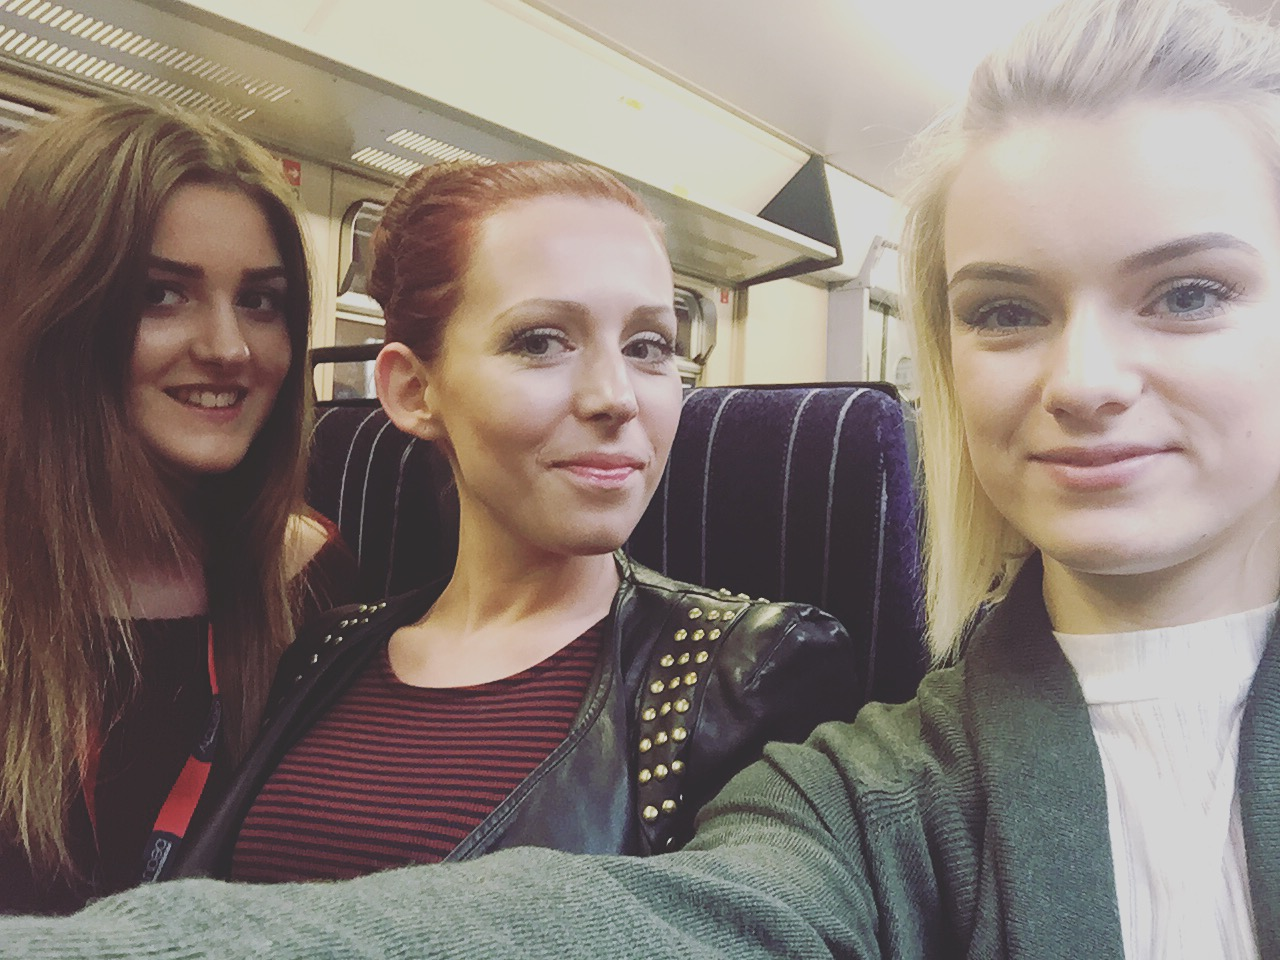 Our day out to pro beauty north little luxury for A little luxury beauty salon